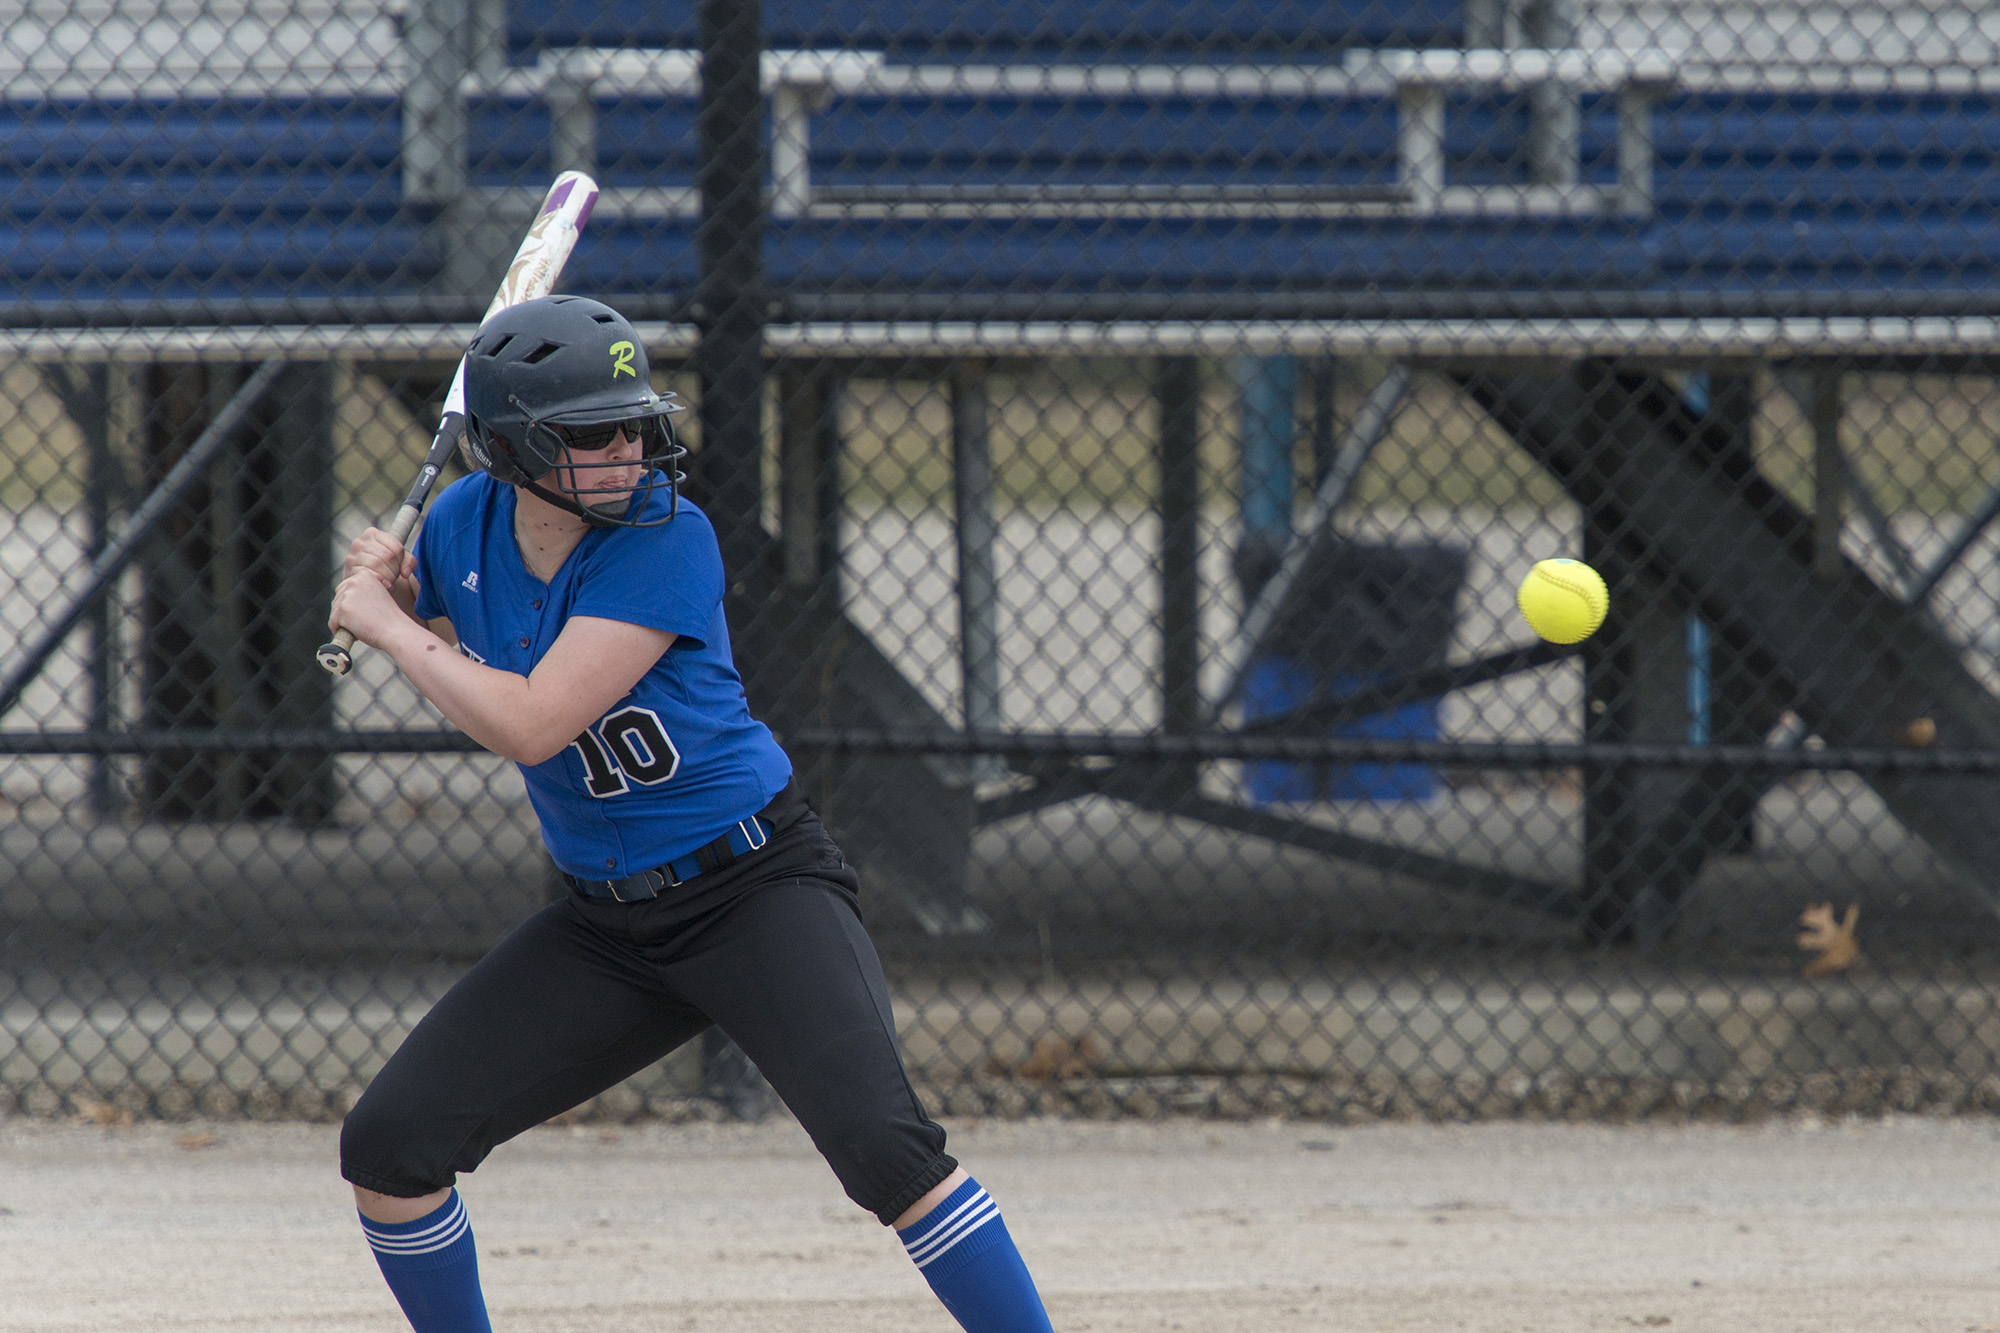 A KCC softball player bats during a home game.